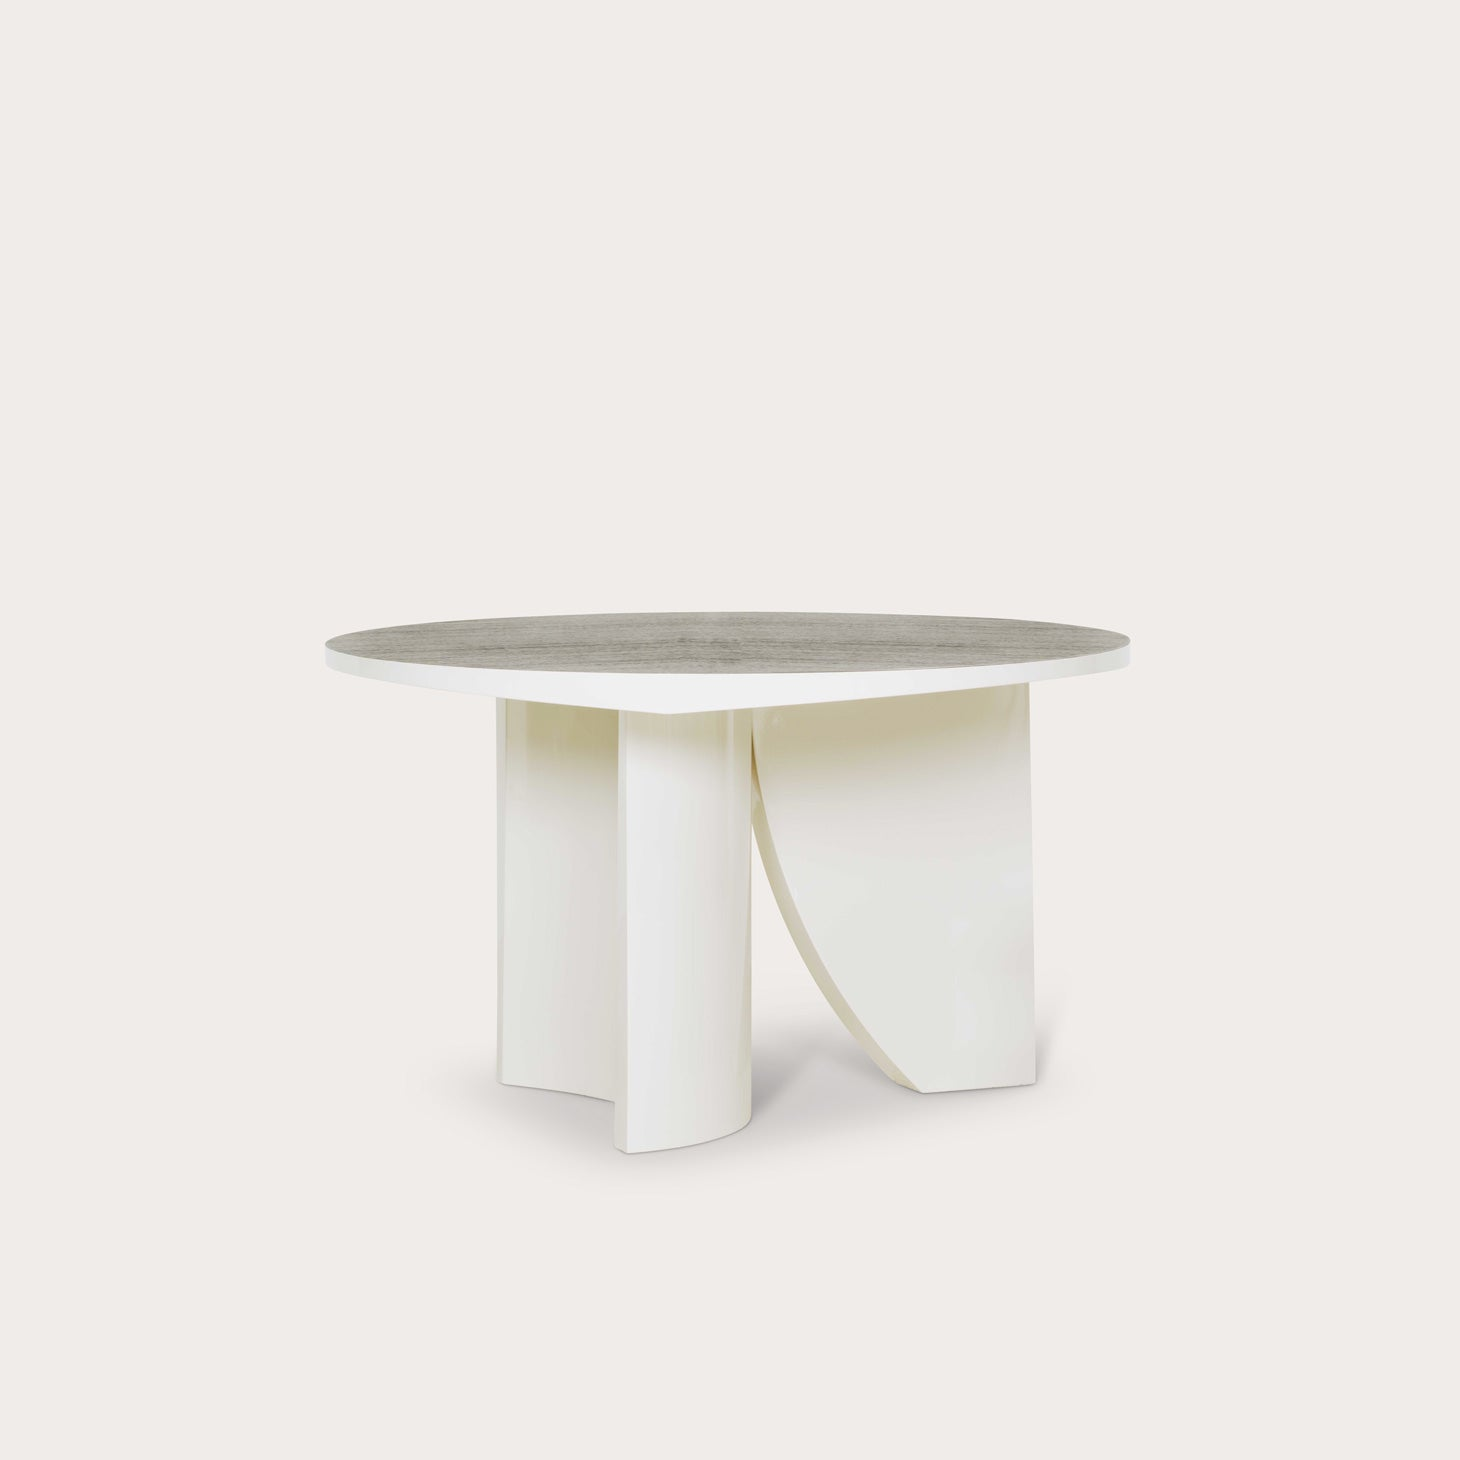 TEO Lounge Table - Circle Tables Christophe Delcourt Designer Furniture Sku: 008-230-10465